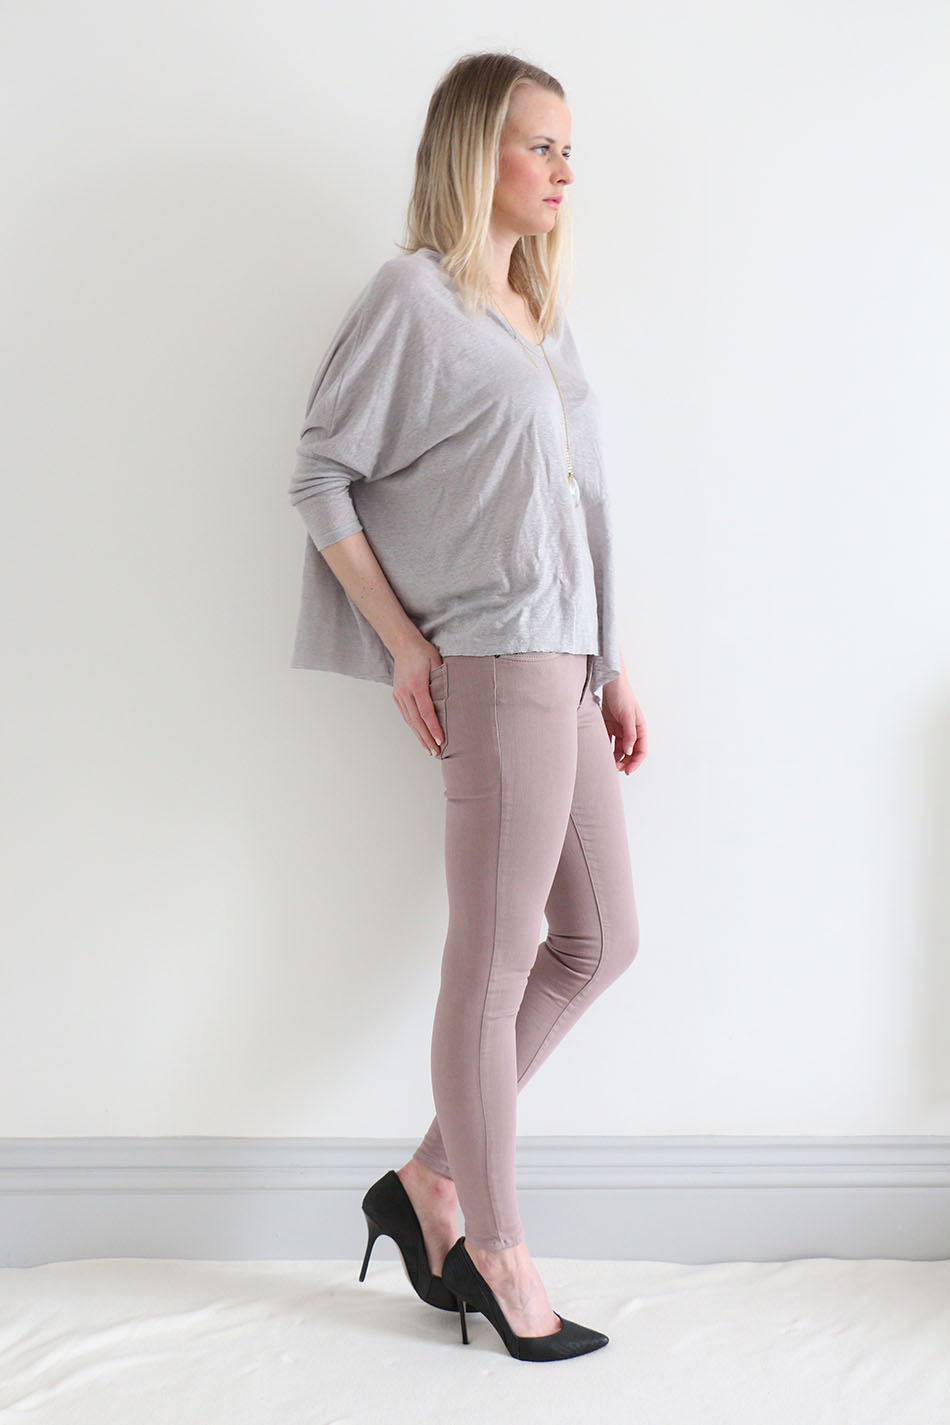 Fringe and Doll Denim Guide Pink Jeans IMG_2978